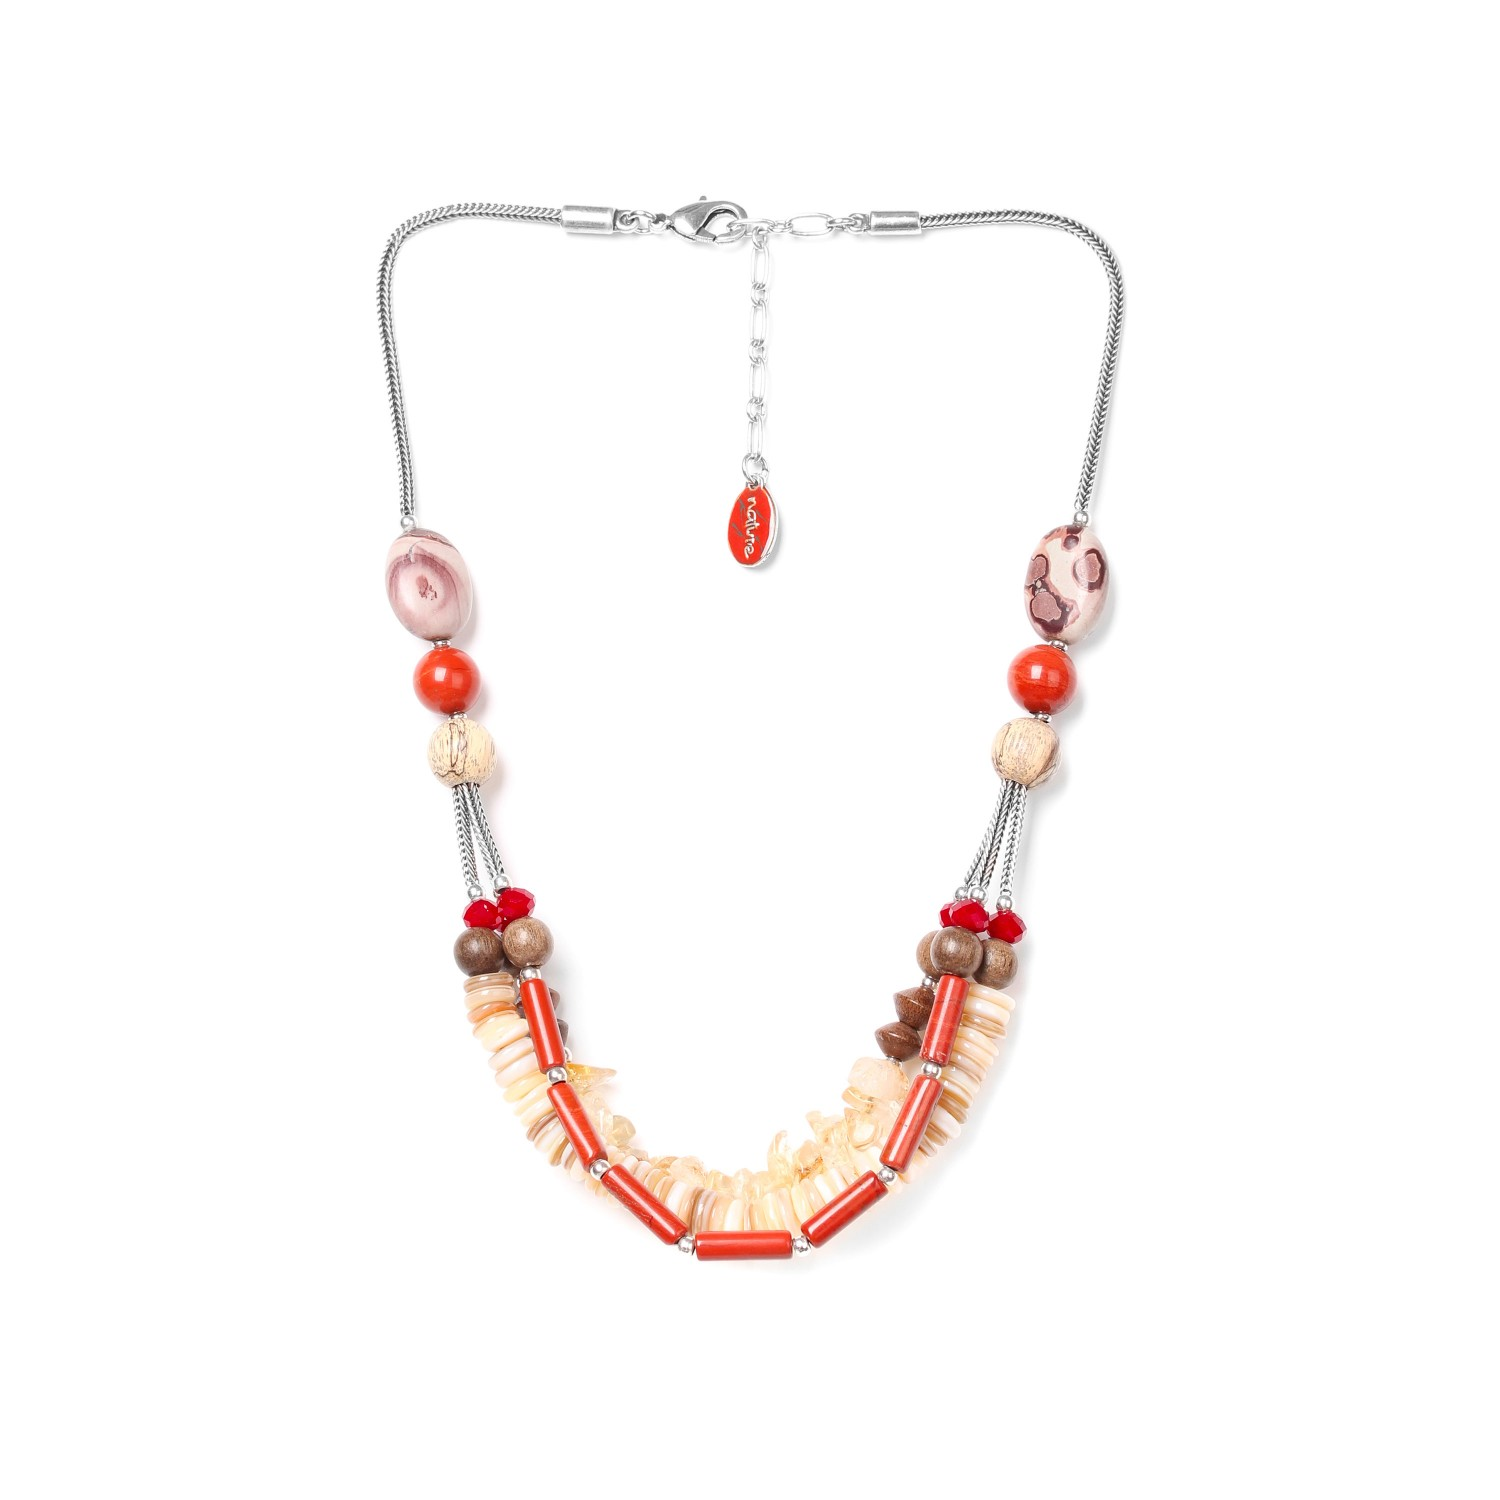 DESERTIGO 3-row necklace